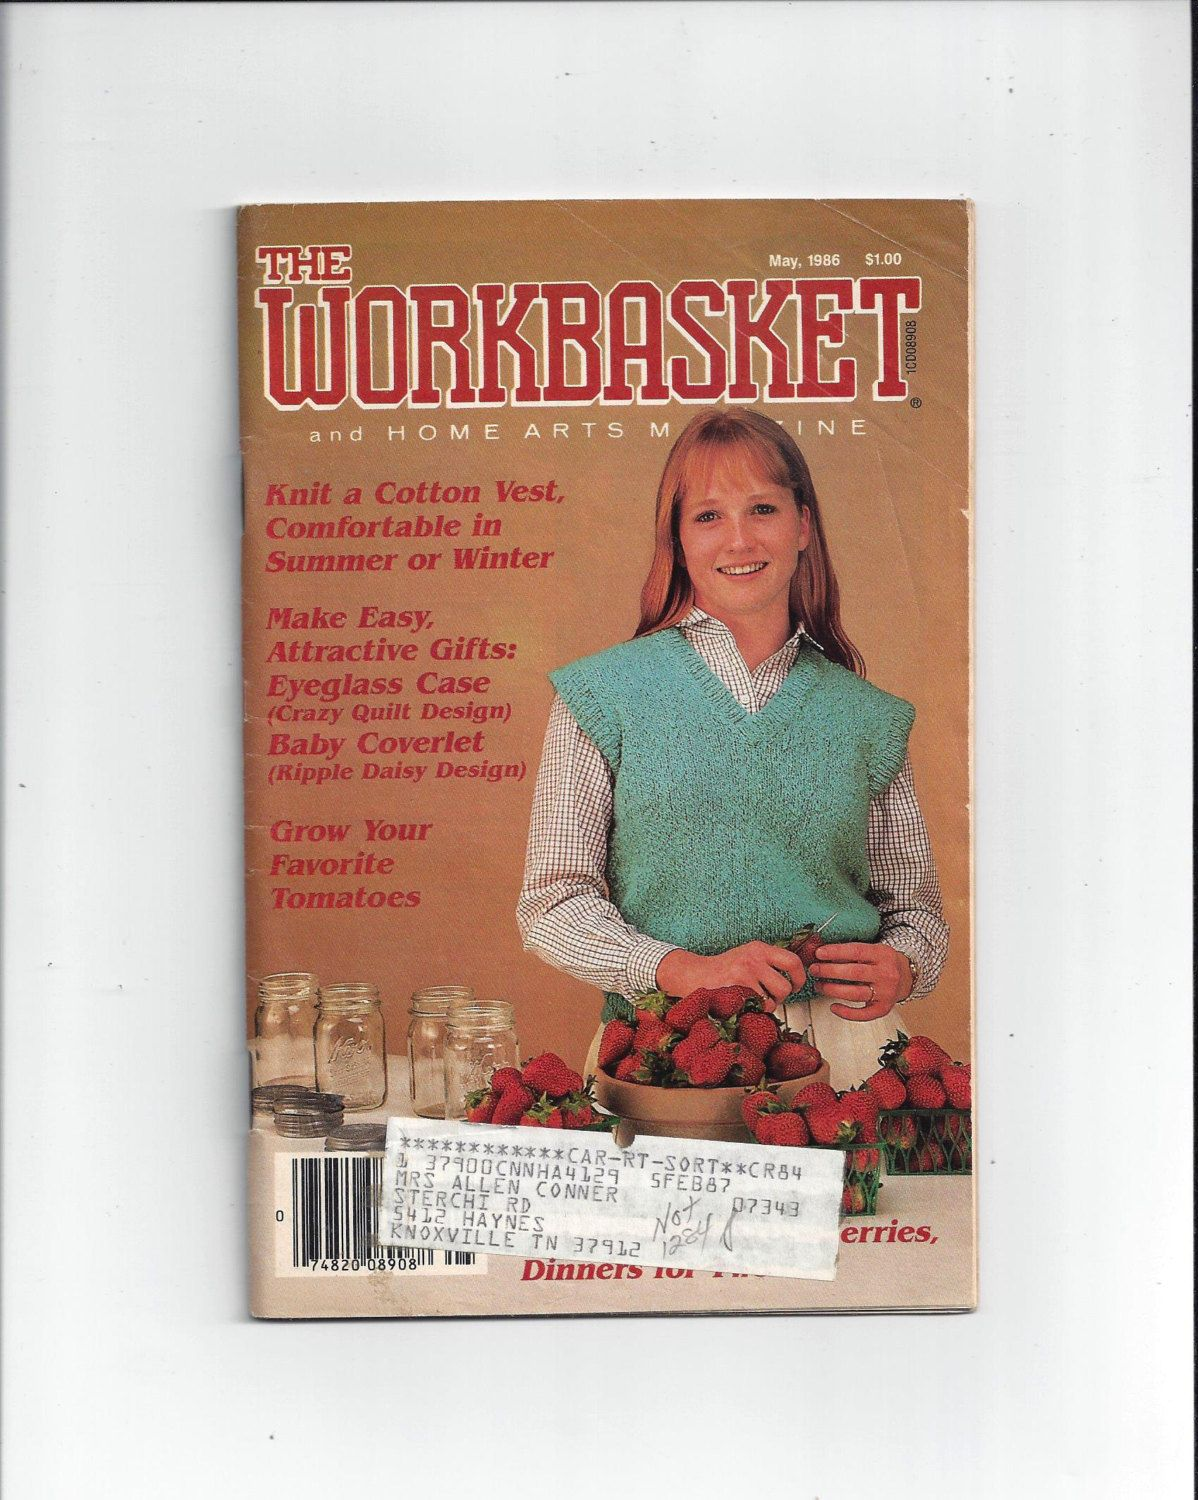 Workbasket home arts magazine may 1986 home knitting crochet workbasket home arts magazine may 1986 home knitting crochet sewing needle work book tatting recipes quilting vintage craft book bankloansurffo Choice Image